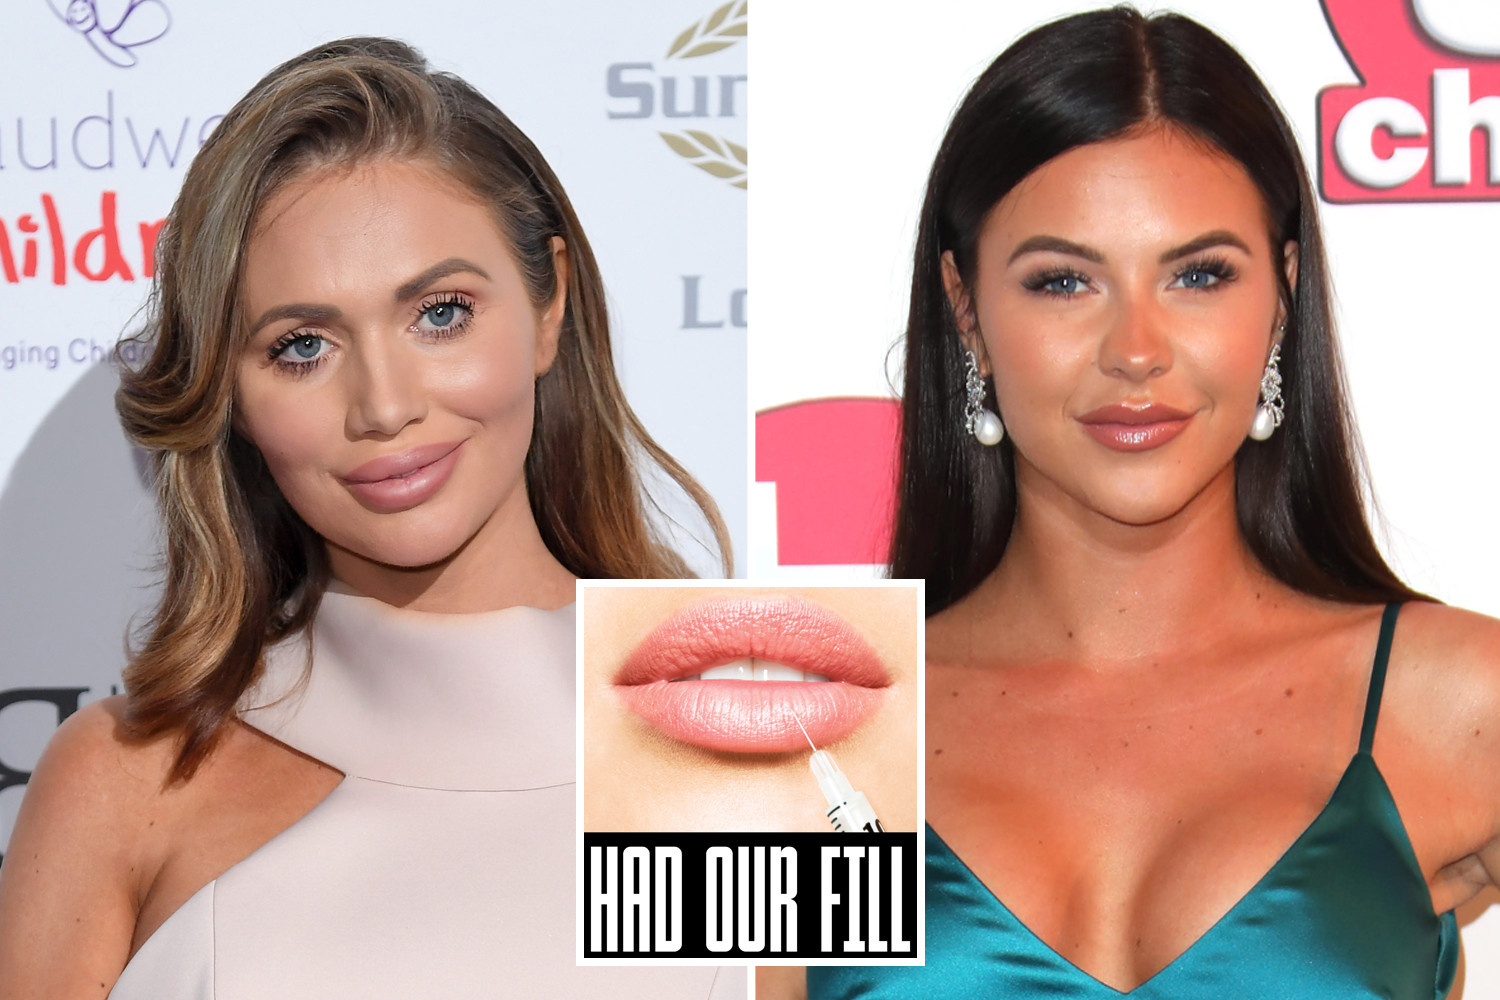 TOWIE stars Amy Childs and Shelby Tribble are backing the campaign to save others having to go through the same horrors as they did